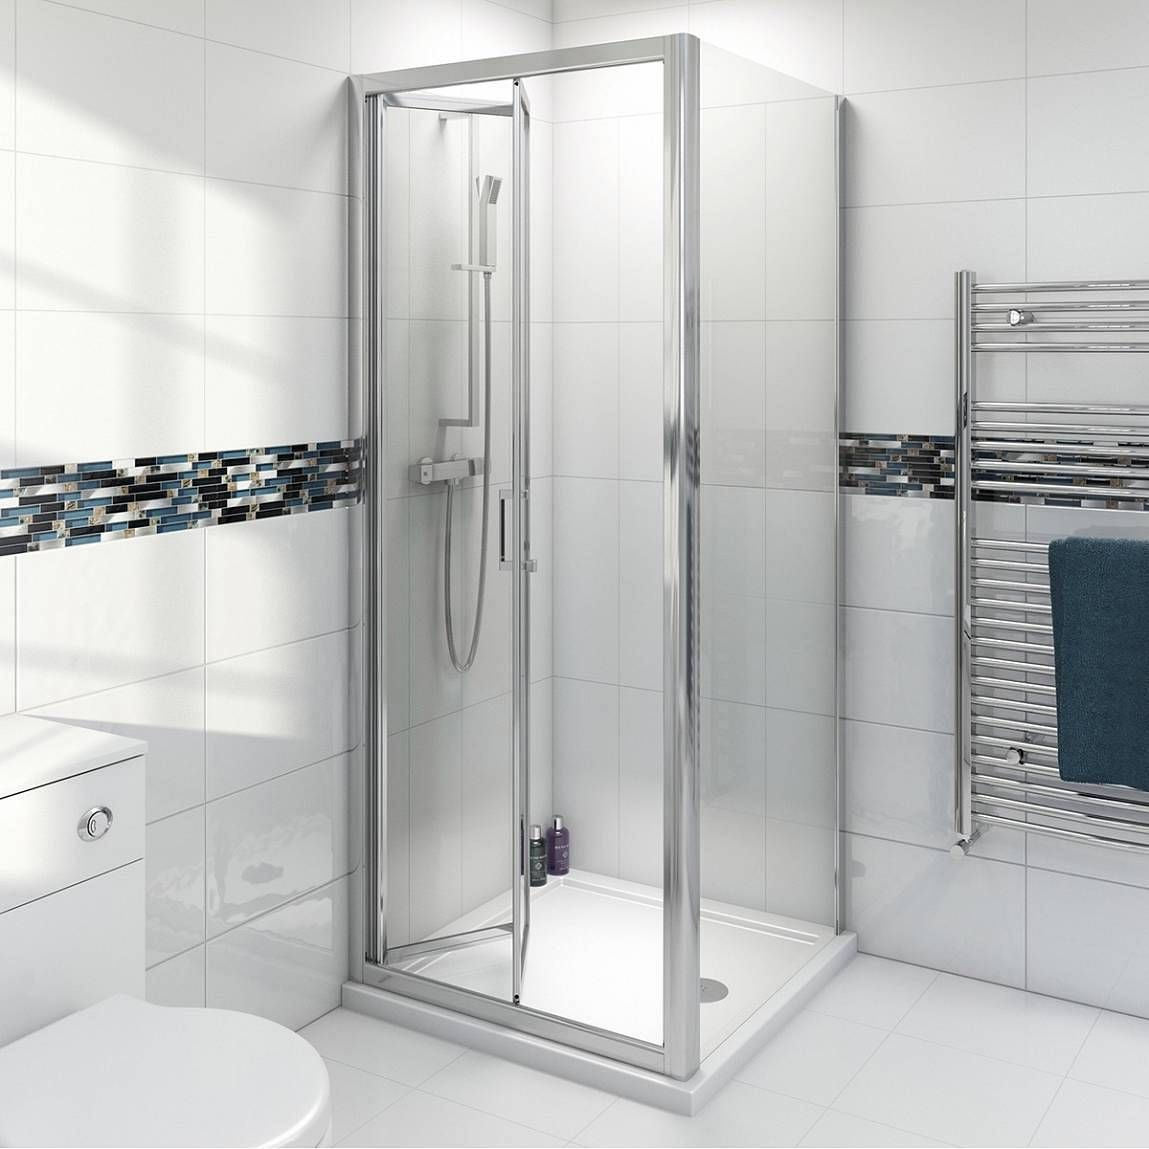 Victoria Plumb Showers >> V6 Bifold Shower Enclosure 760 - Victoria Plumb | bathroom | Rectangular shower enclosures ...